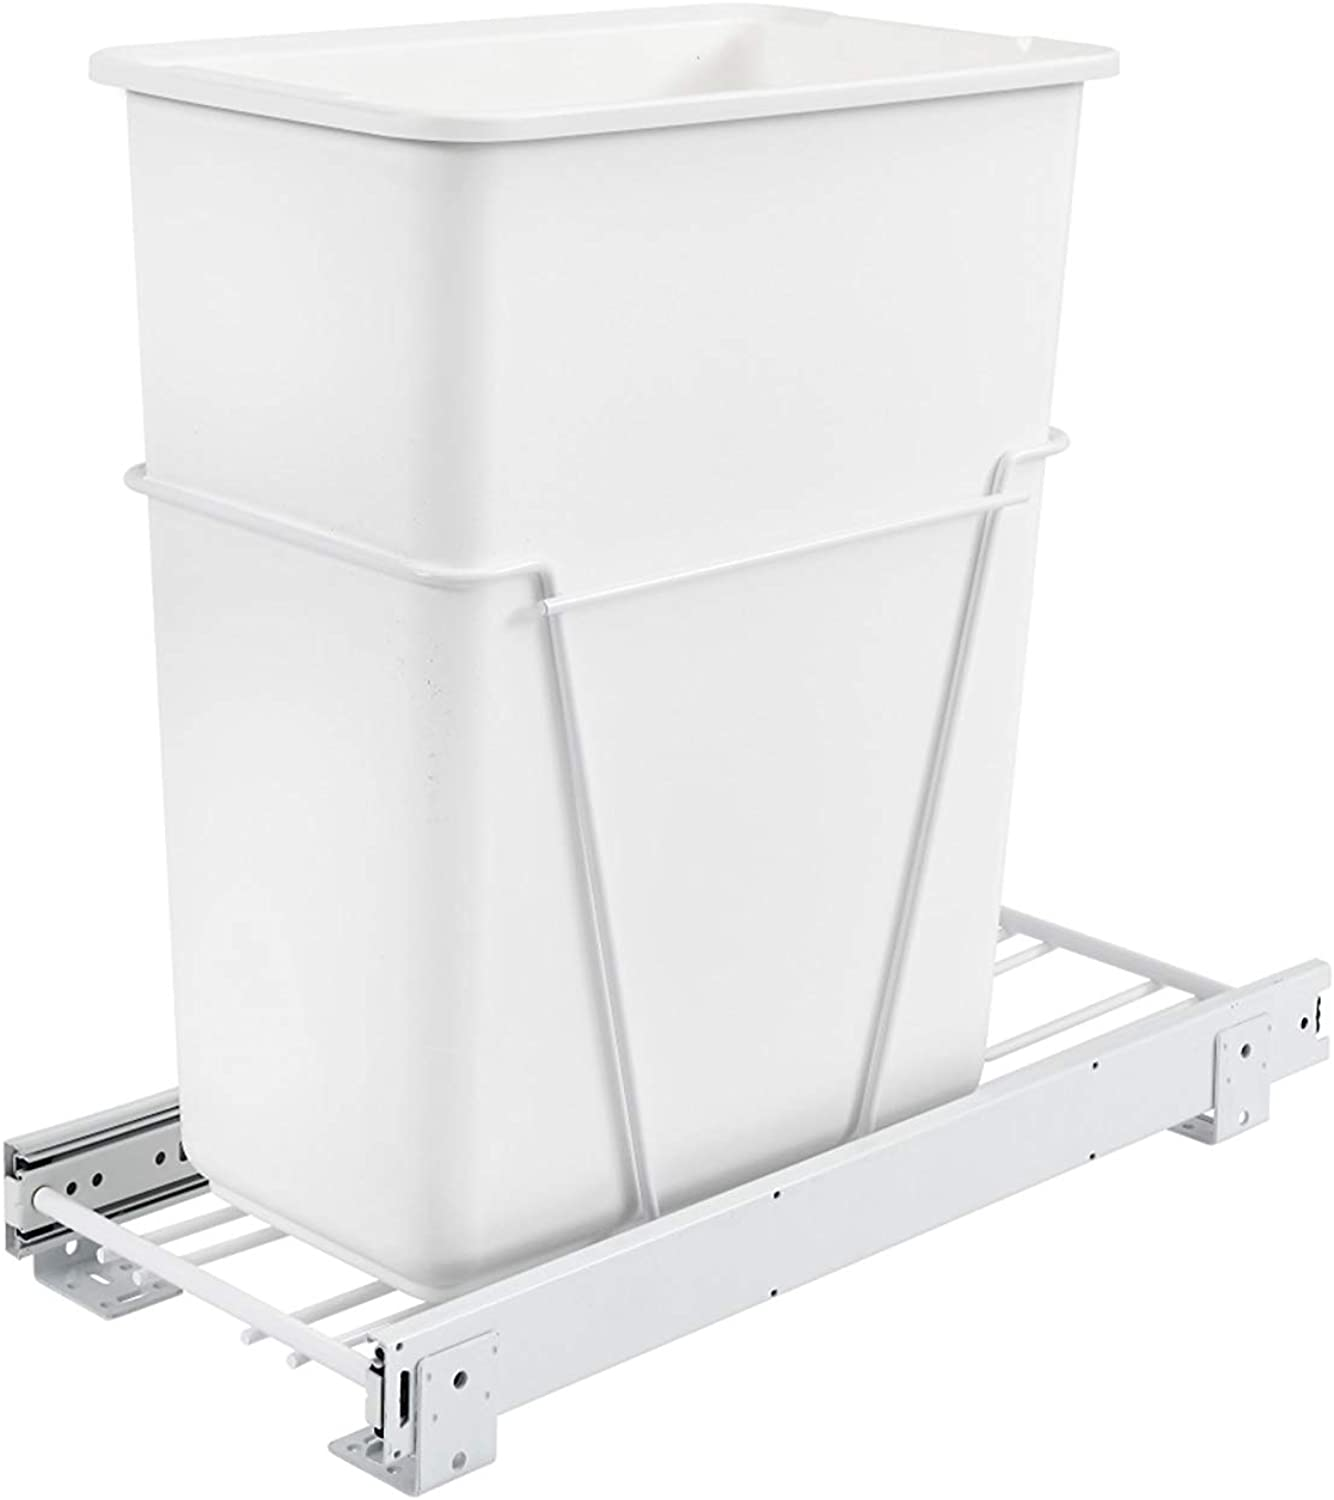 Rev-A-Shelf 30 Quart Pullout Waste Container, White